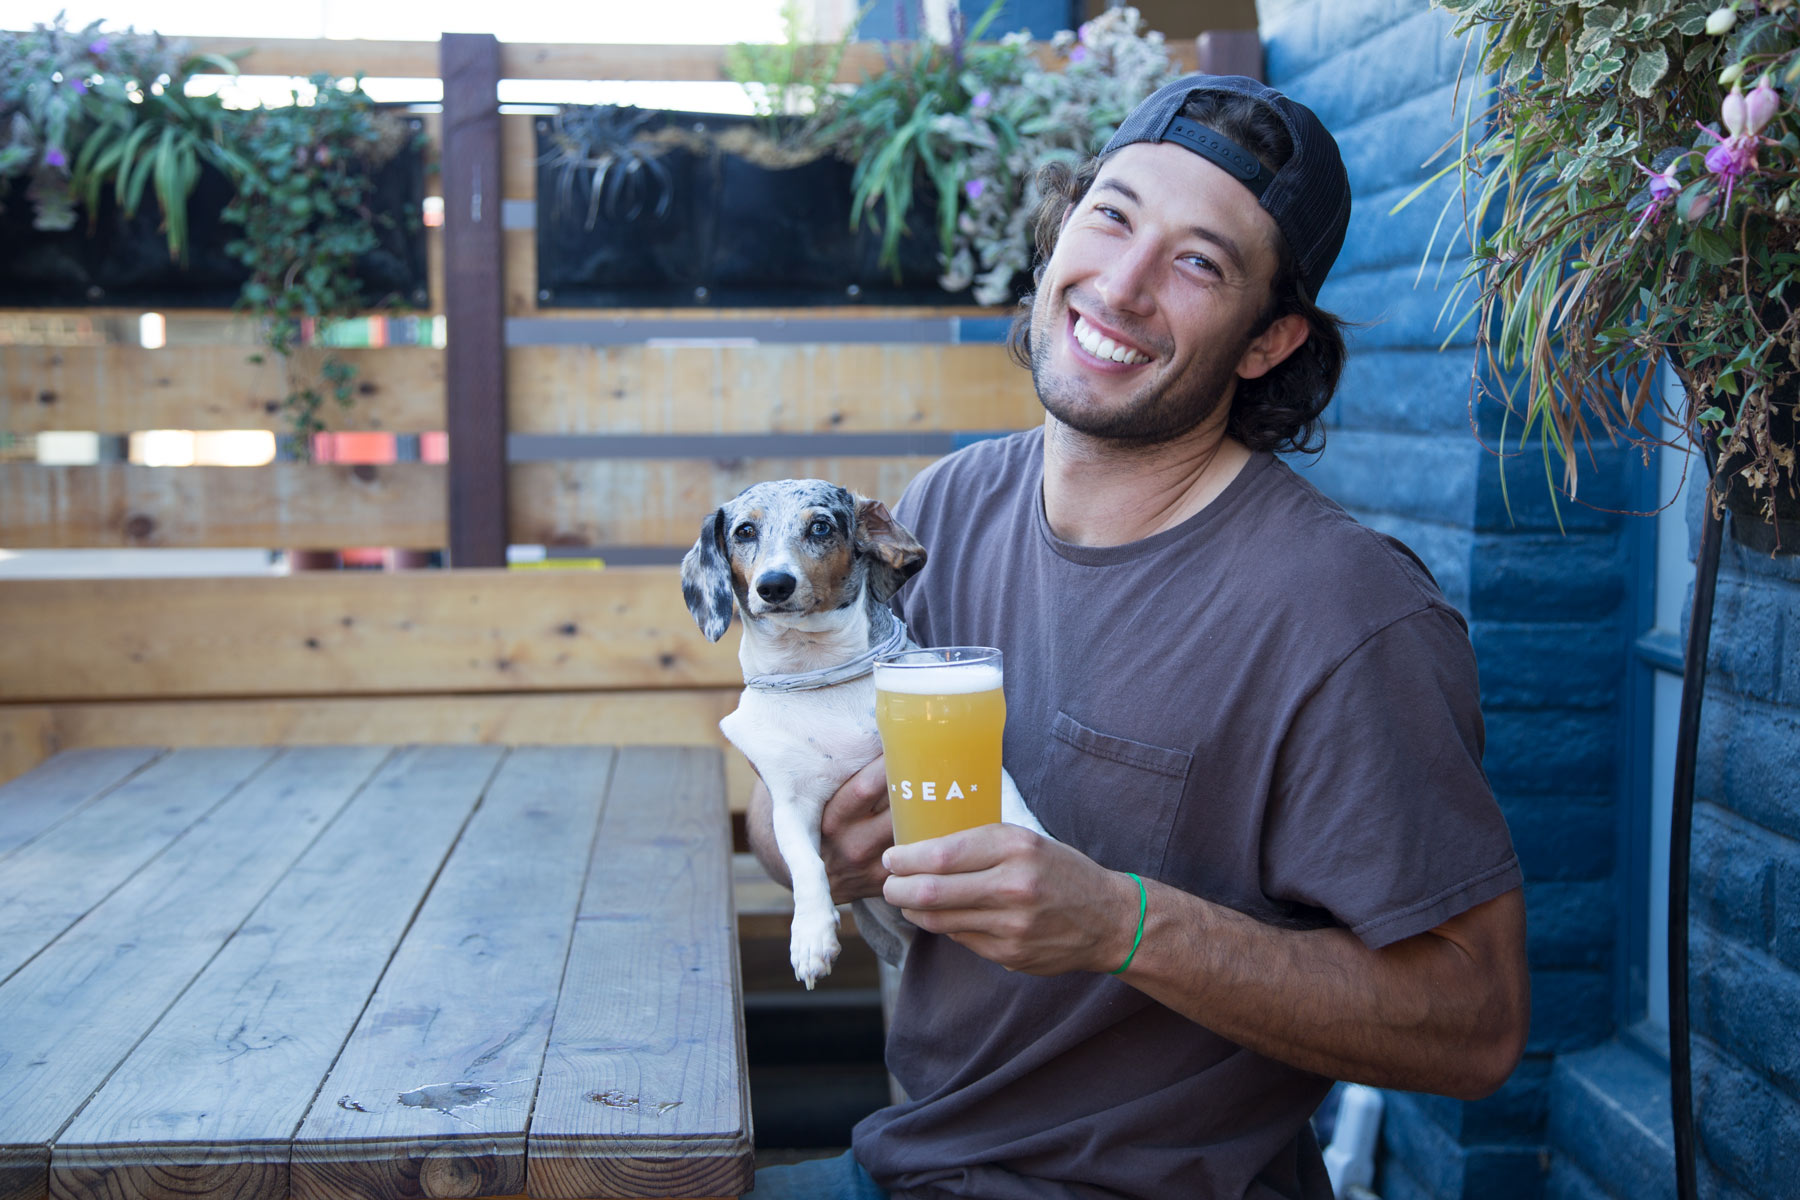 Cofounder Taylor West crushing a new Humble Sea nonic pint glass with Billie the dog.